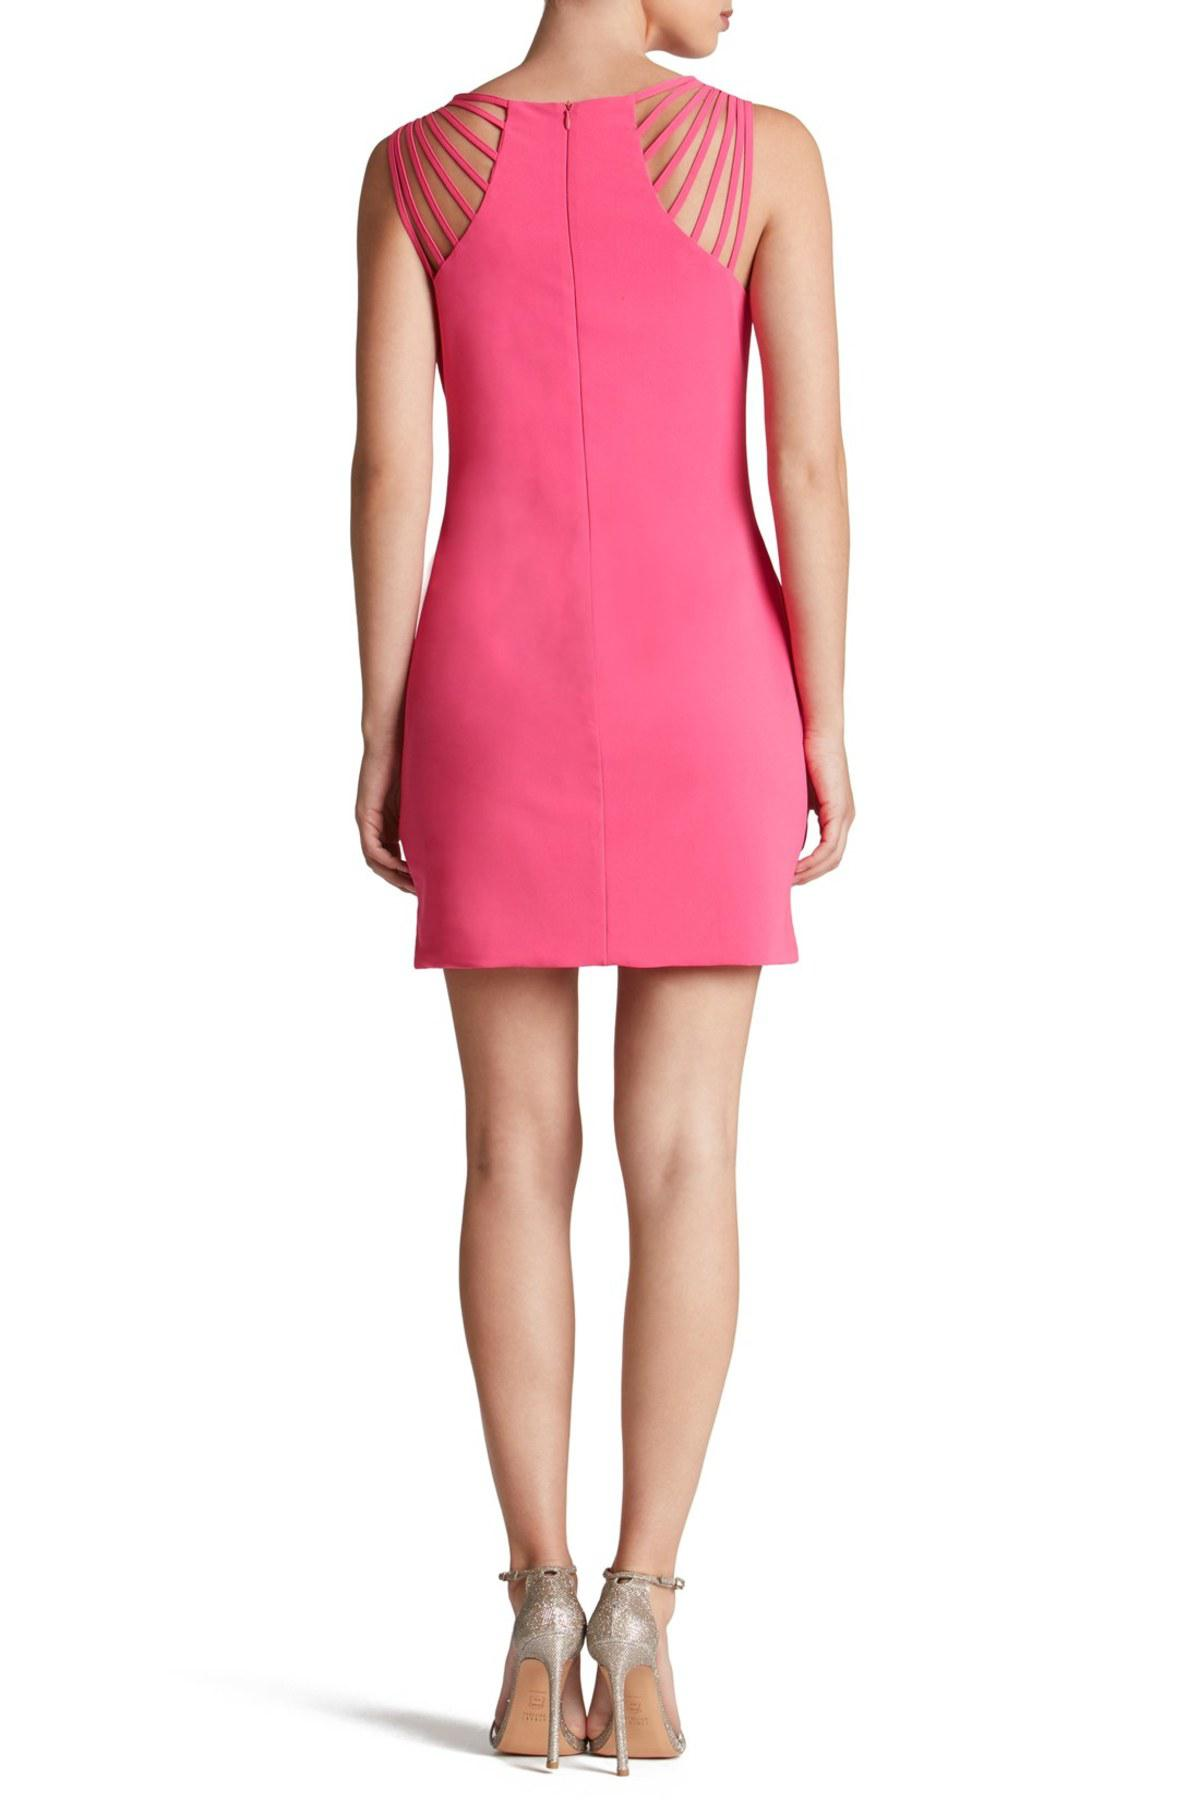 8b705d1f Gallery. Previously sold at: Nordstrom, Nordstrom Rack · Women's Sheath  Dresses ...